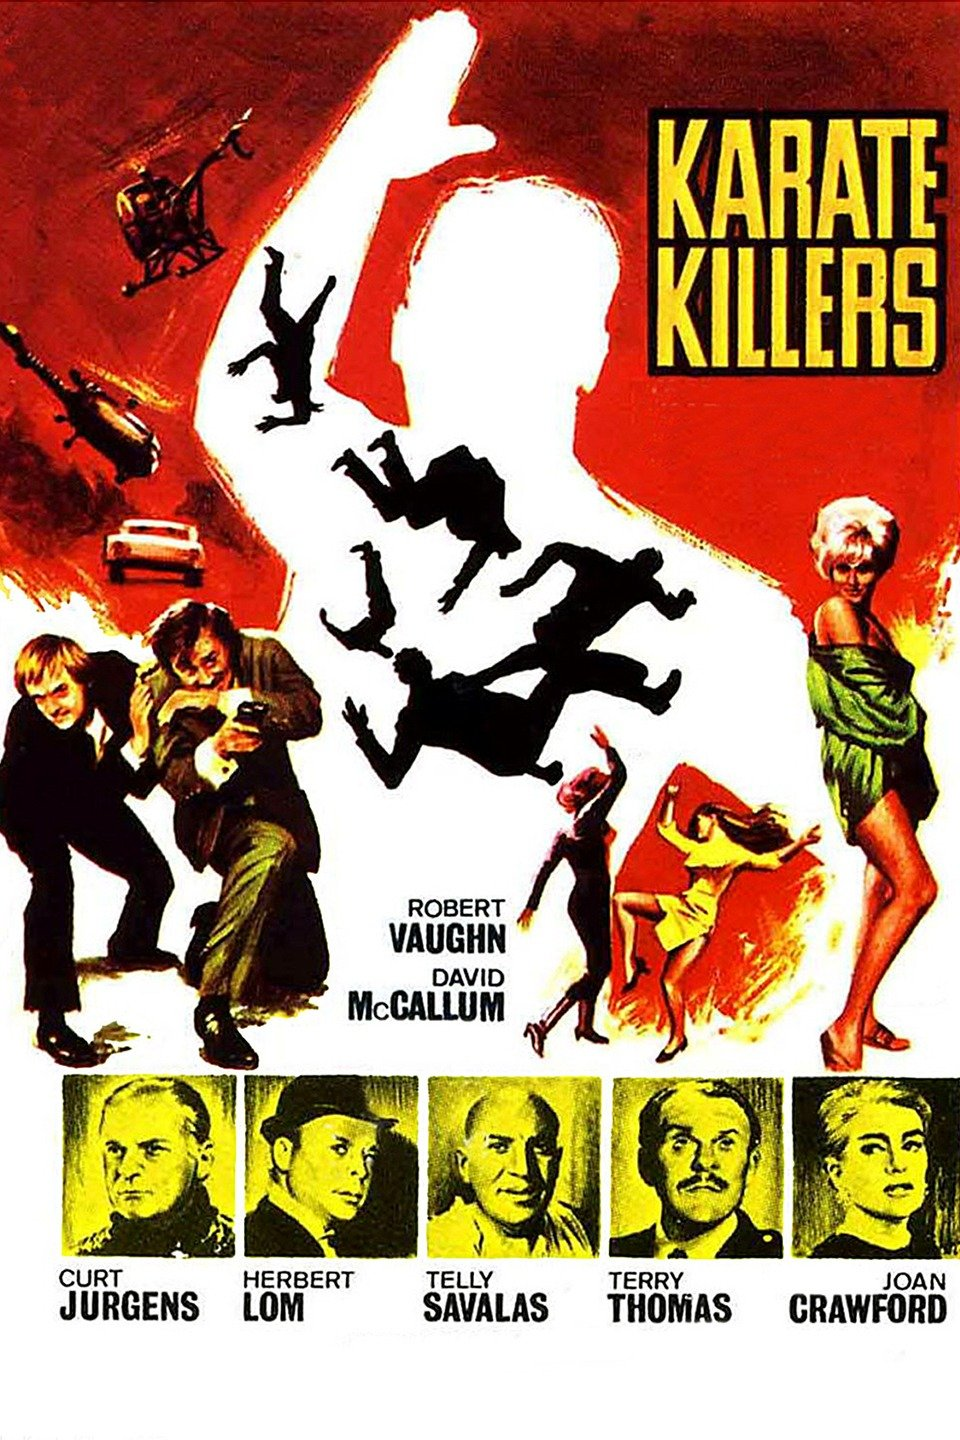 The Karate Killers kill everything… especially anything good in this movie.